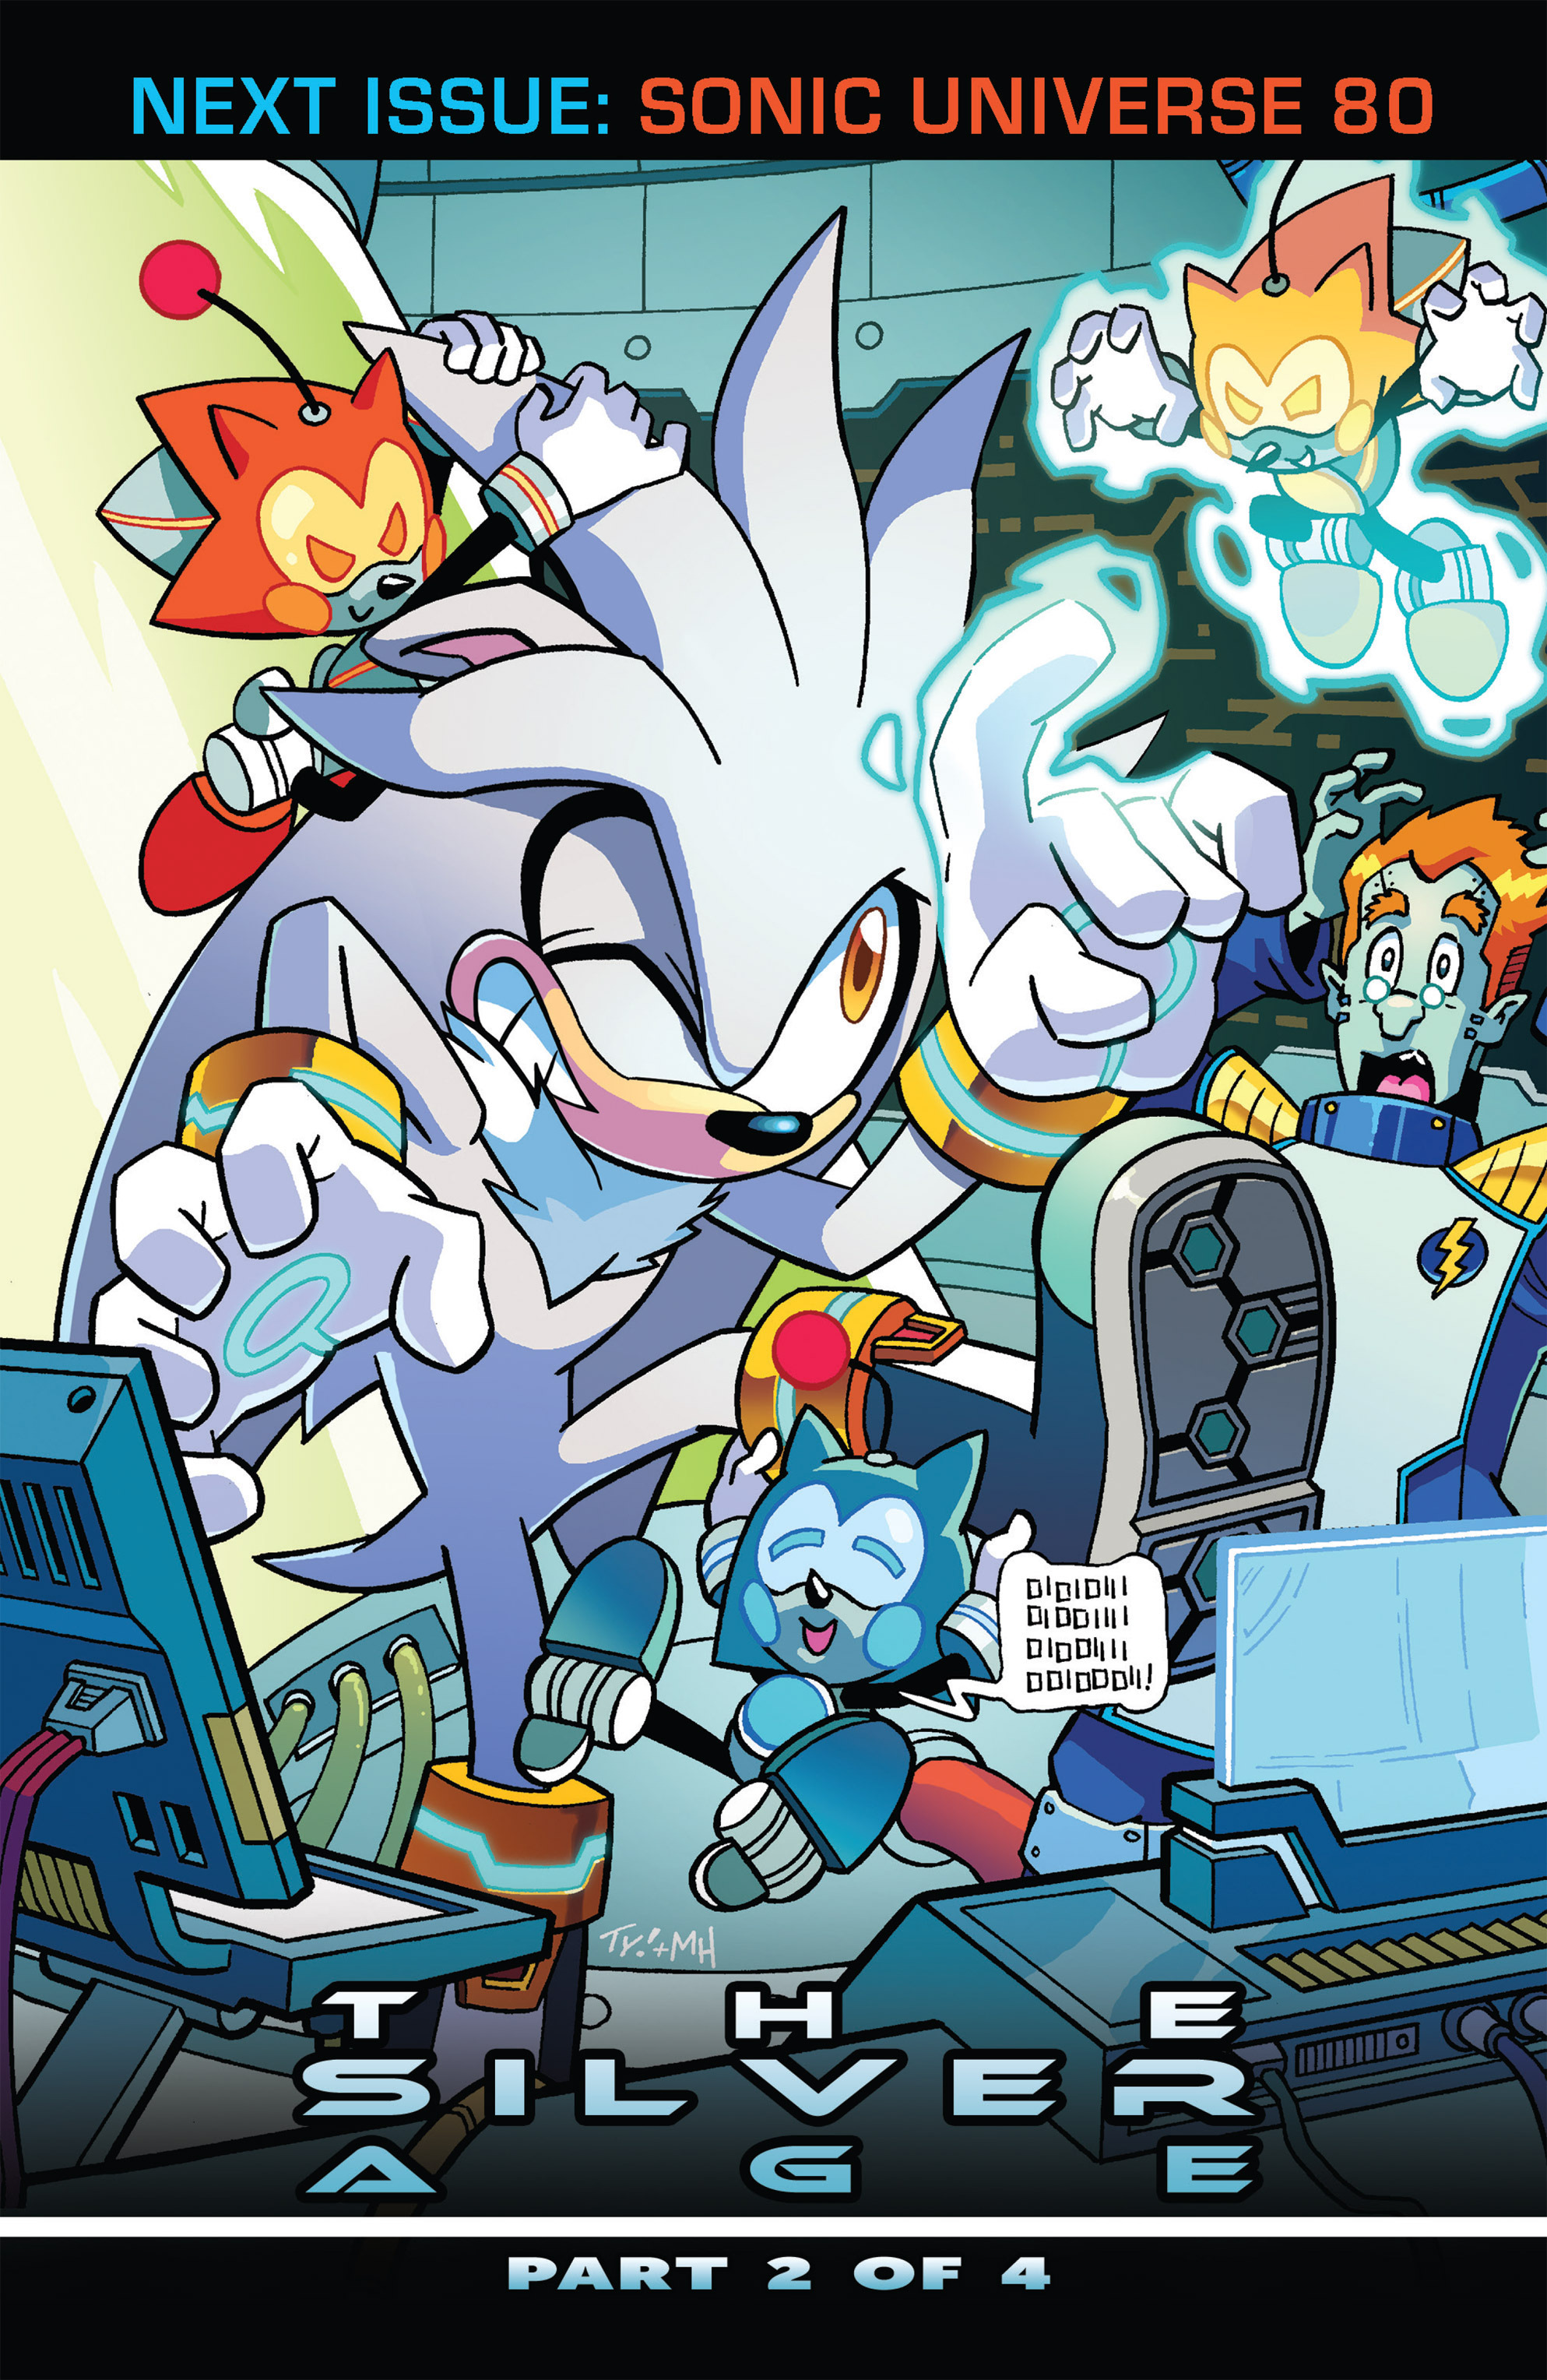 Read online Sonic Universe comic -  Issue #79 - 25